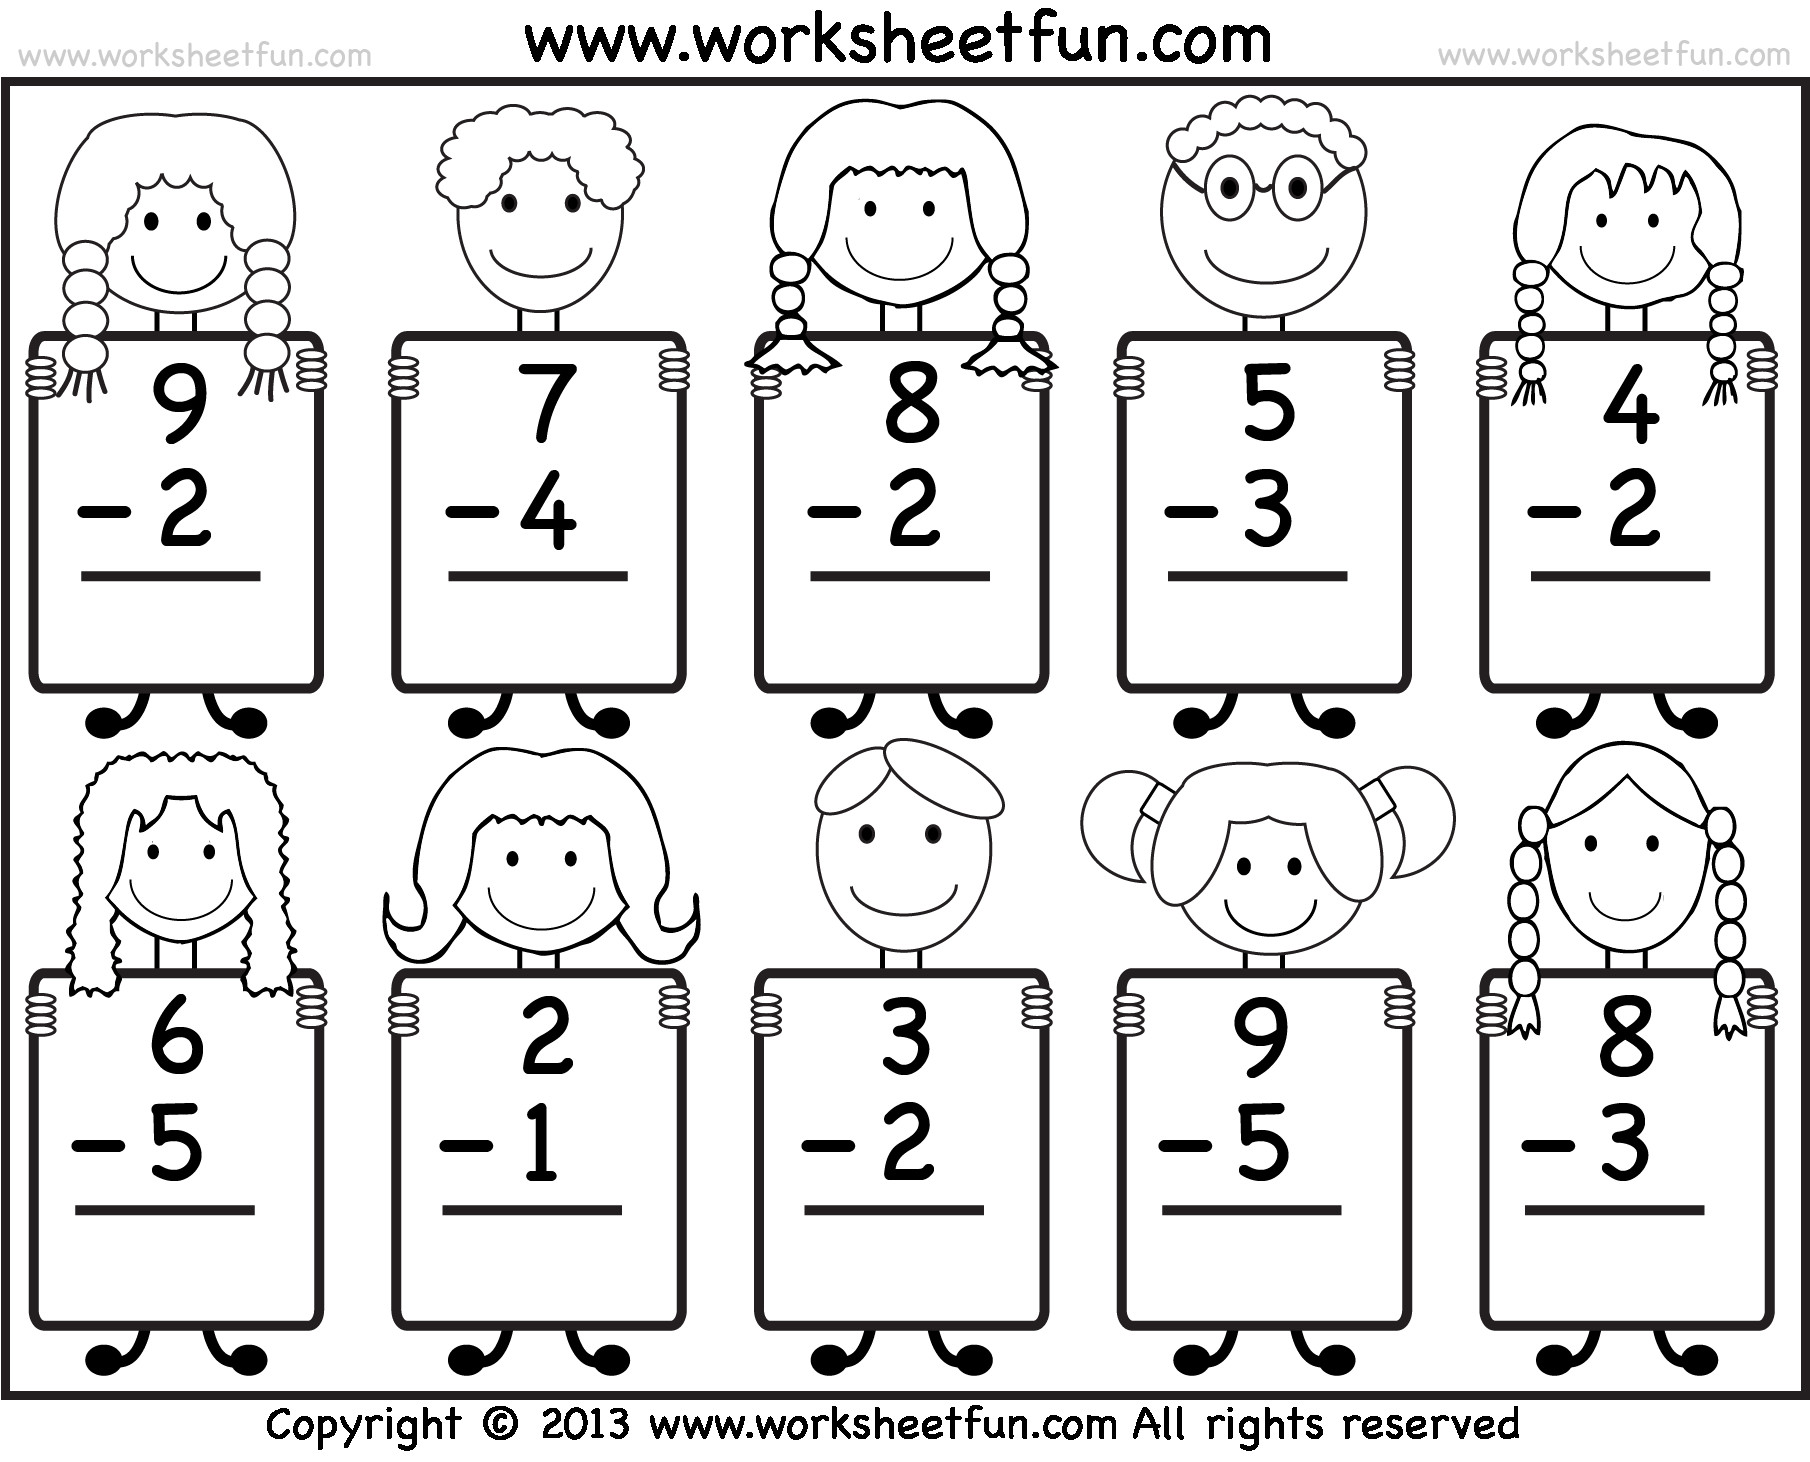 hight resolution of Adding Worksheets For 4th Grade   Printable Worksheets and Activities for  Teachers